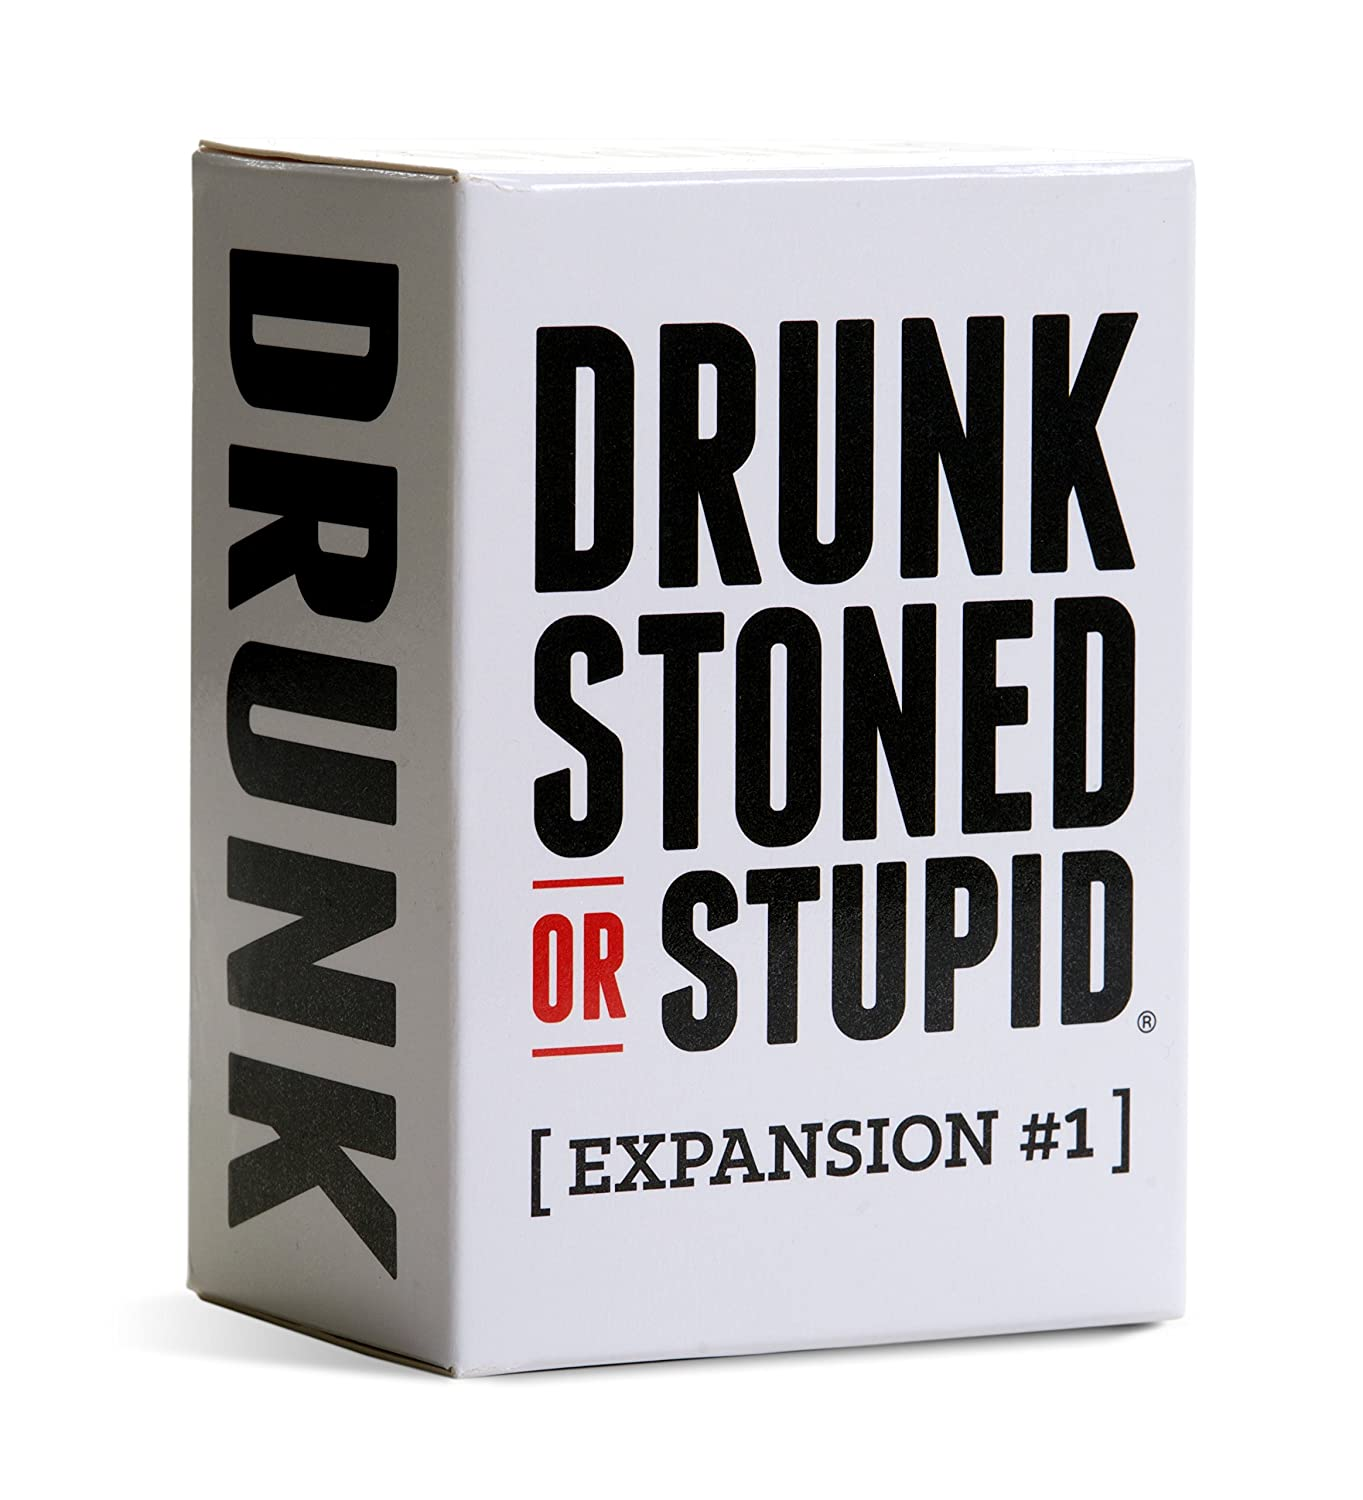 DRUNK STONED OR STUPID: First Expansion 859575007040